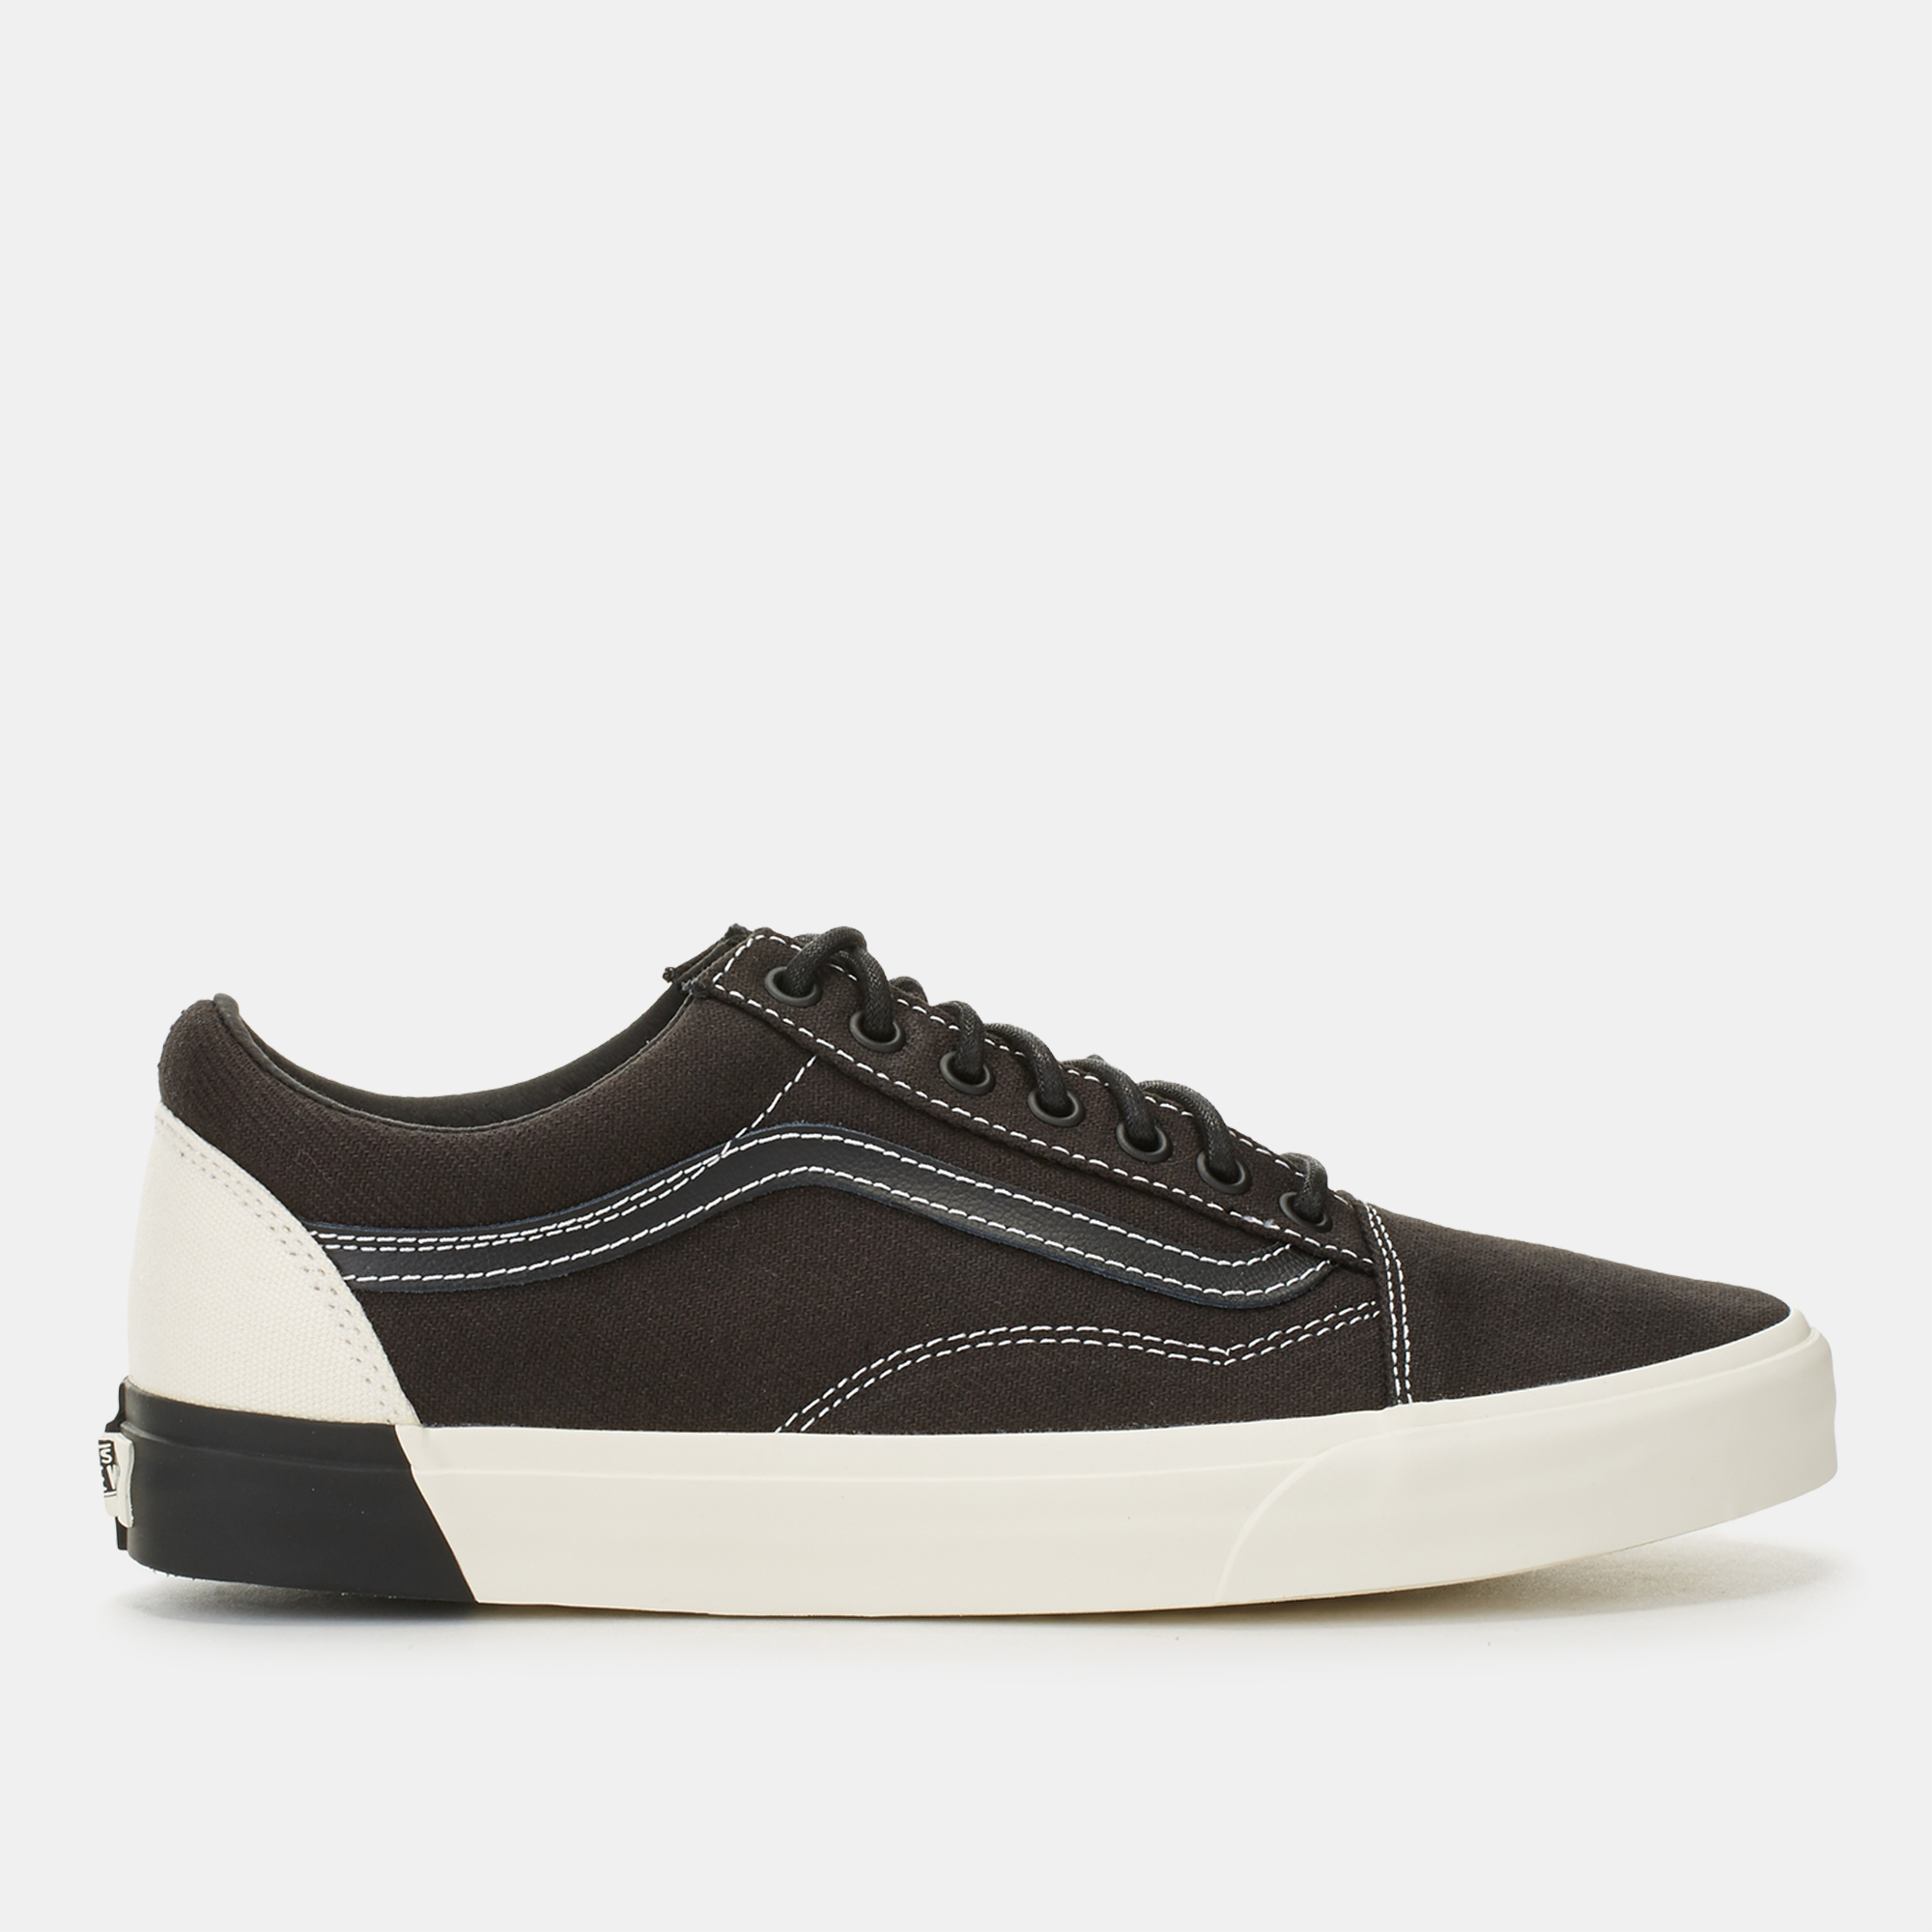 Vans Blocked Old Skool DX Shoe | Sneakers | Shoes | Men's